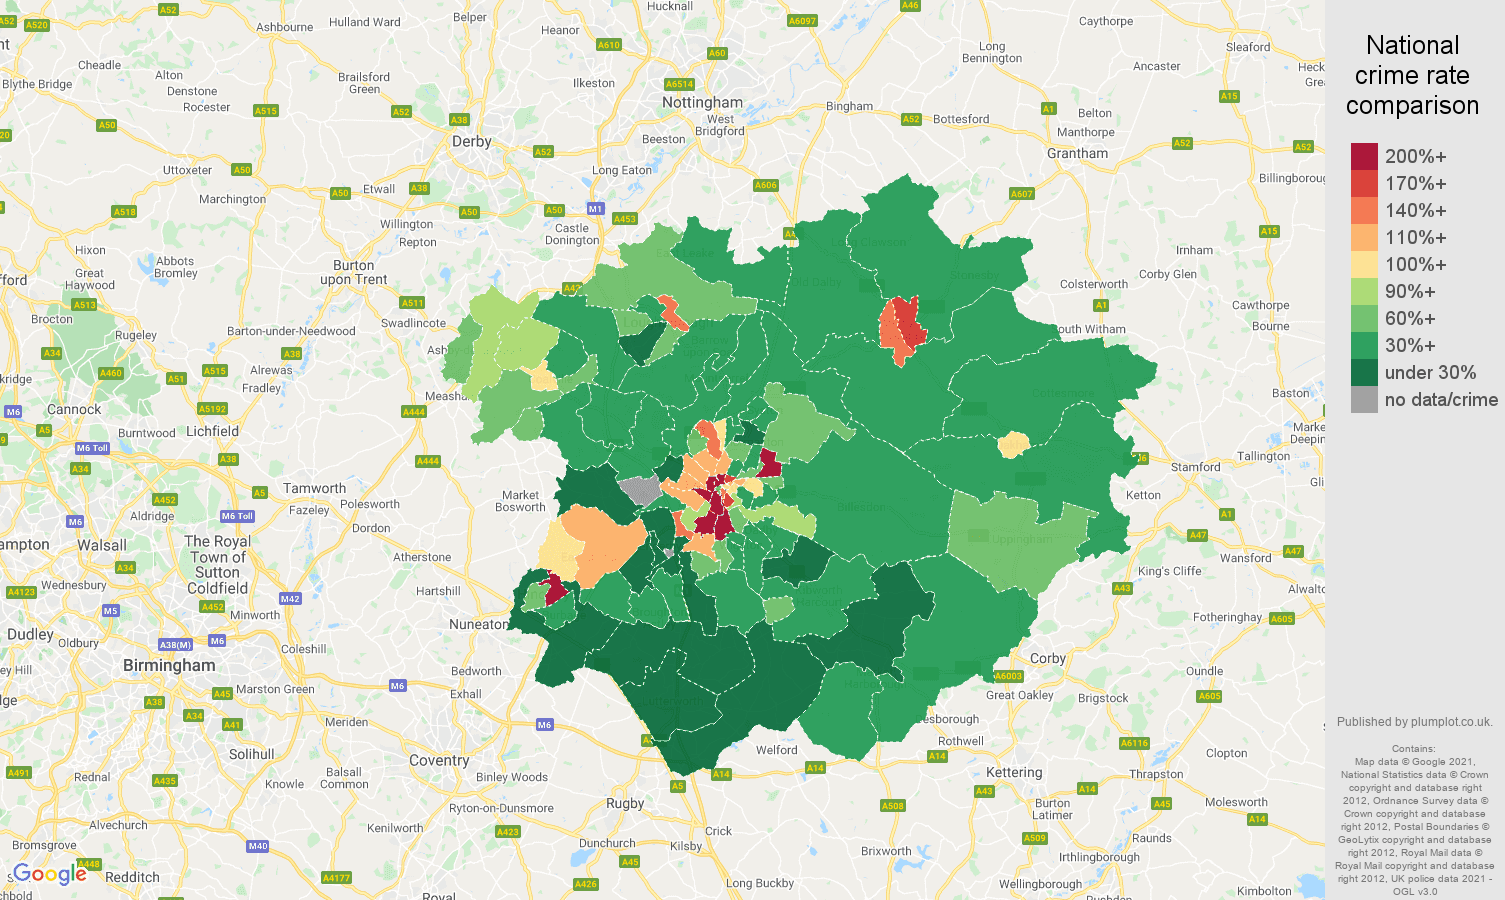 Leicester drugs crime rate comparison map